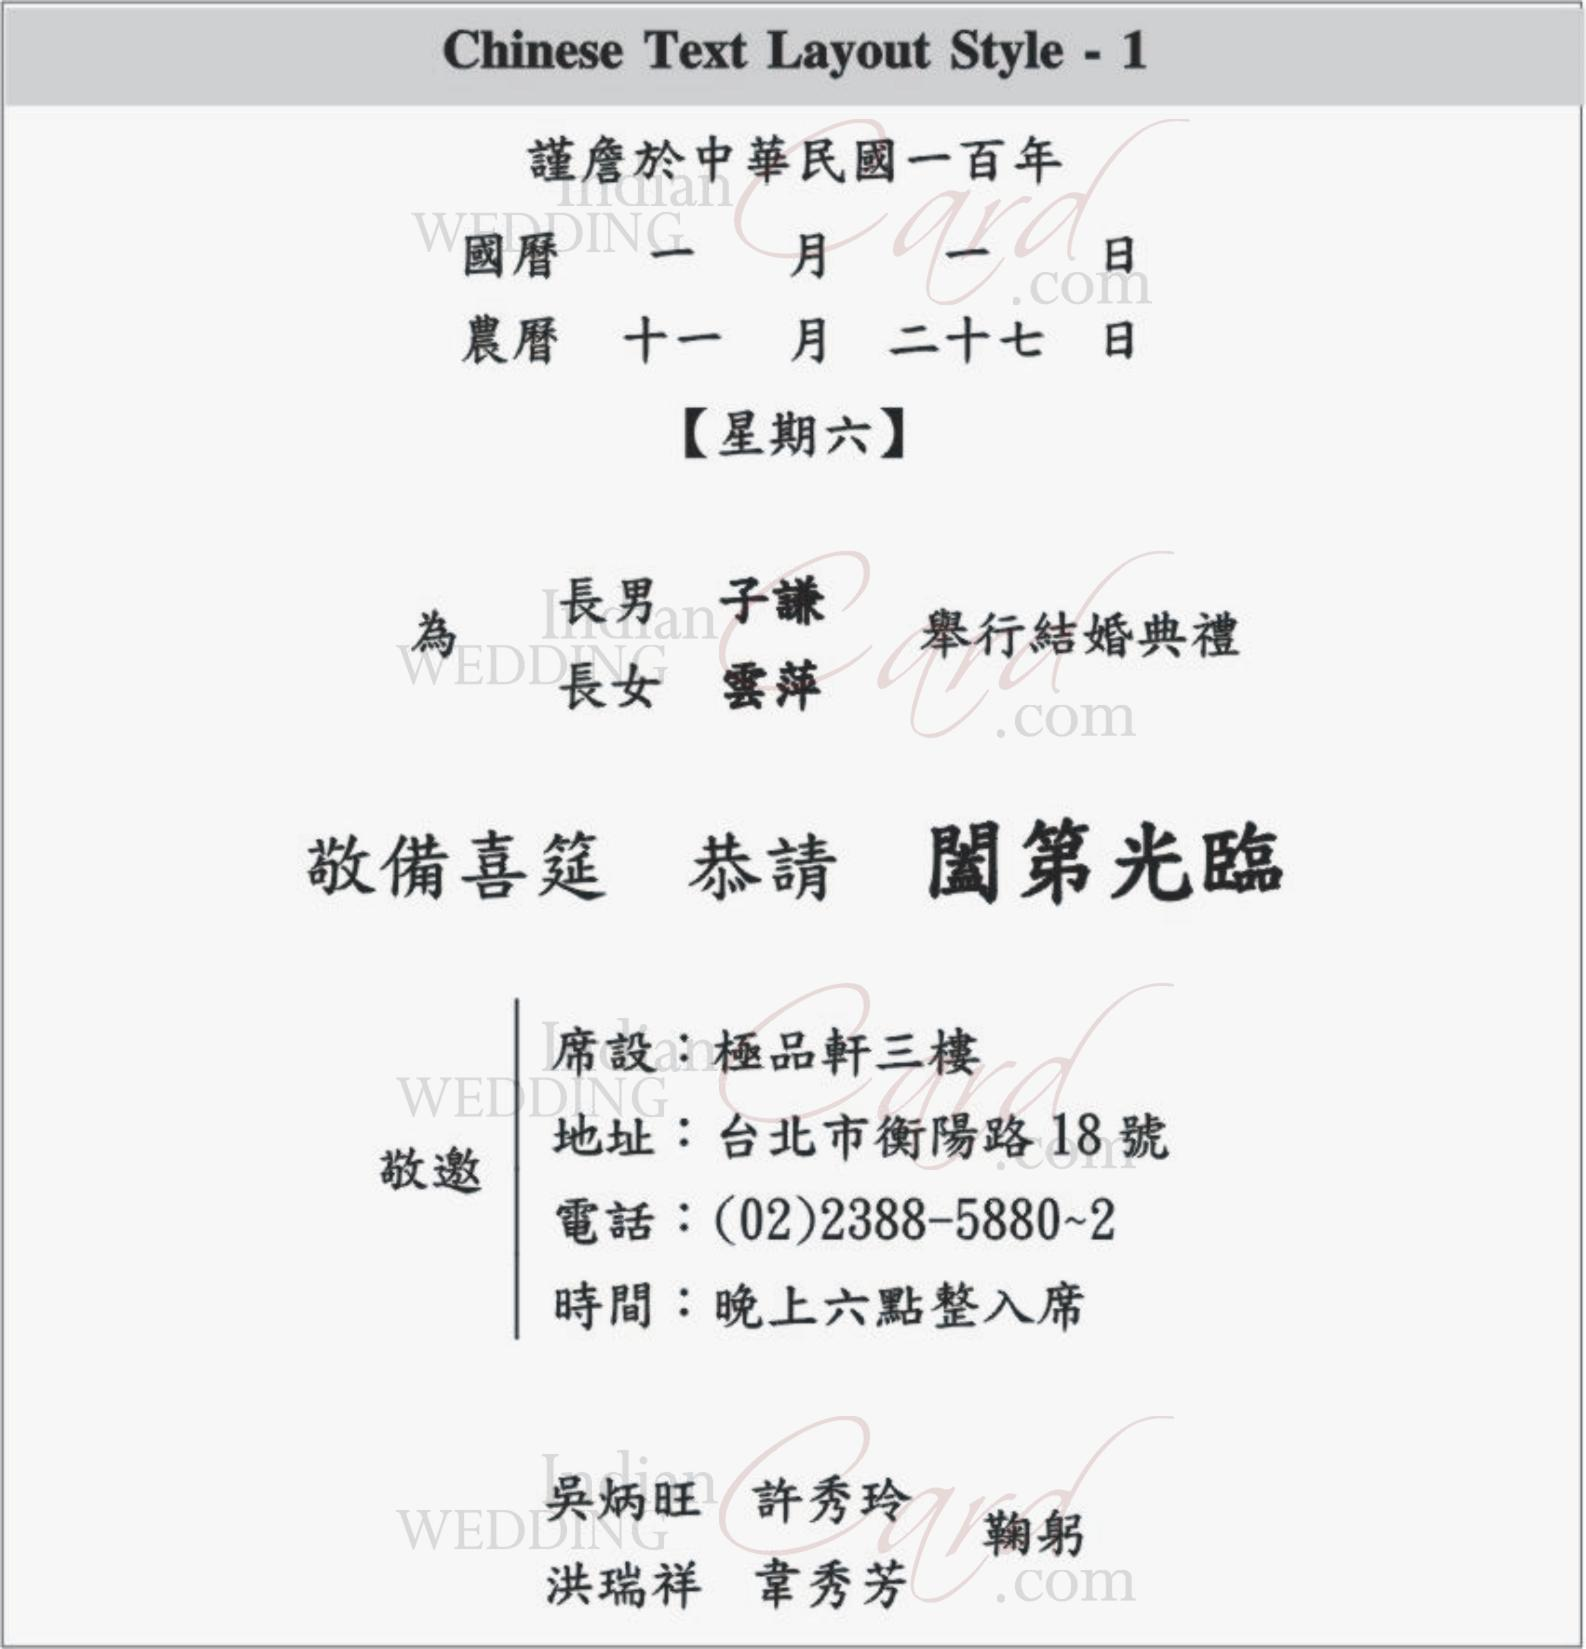 Scroll wedding invitations scroll invitations wedding scrolls chinese text layout 1 filmwisefo Image collections